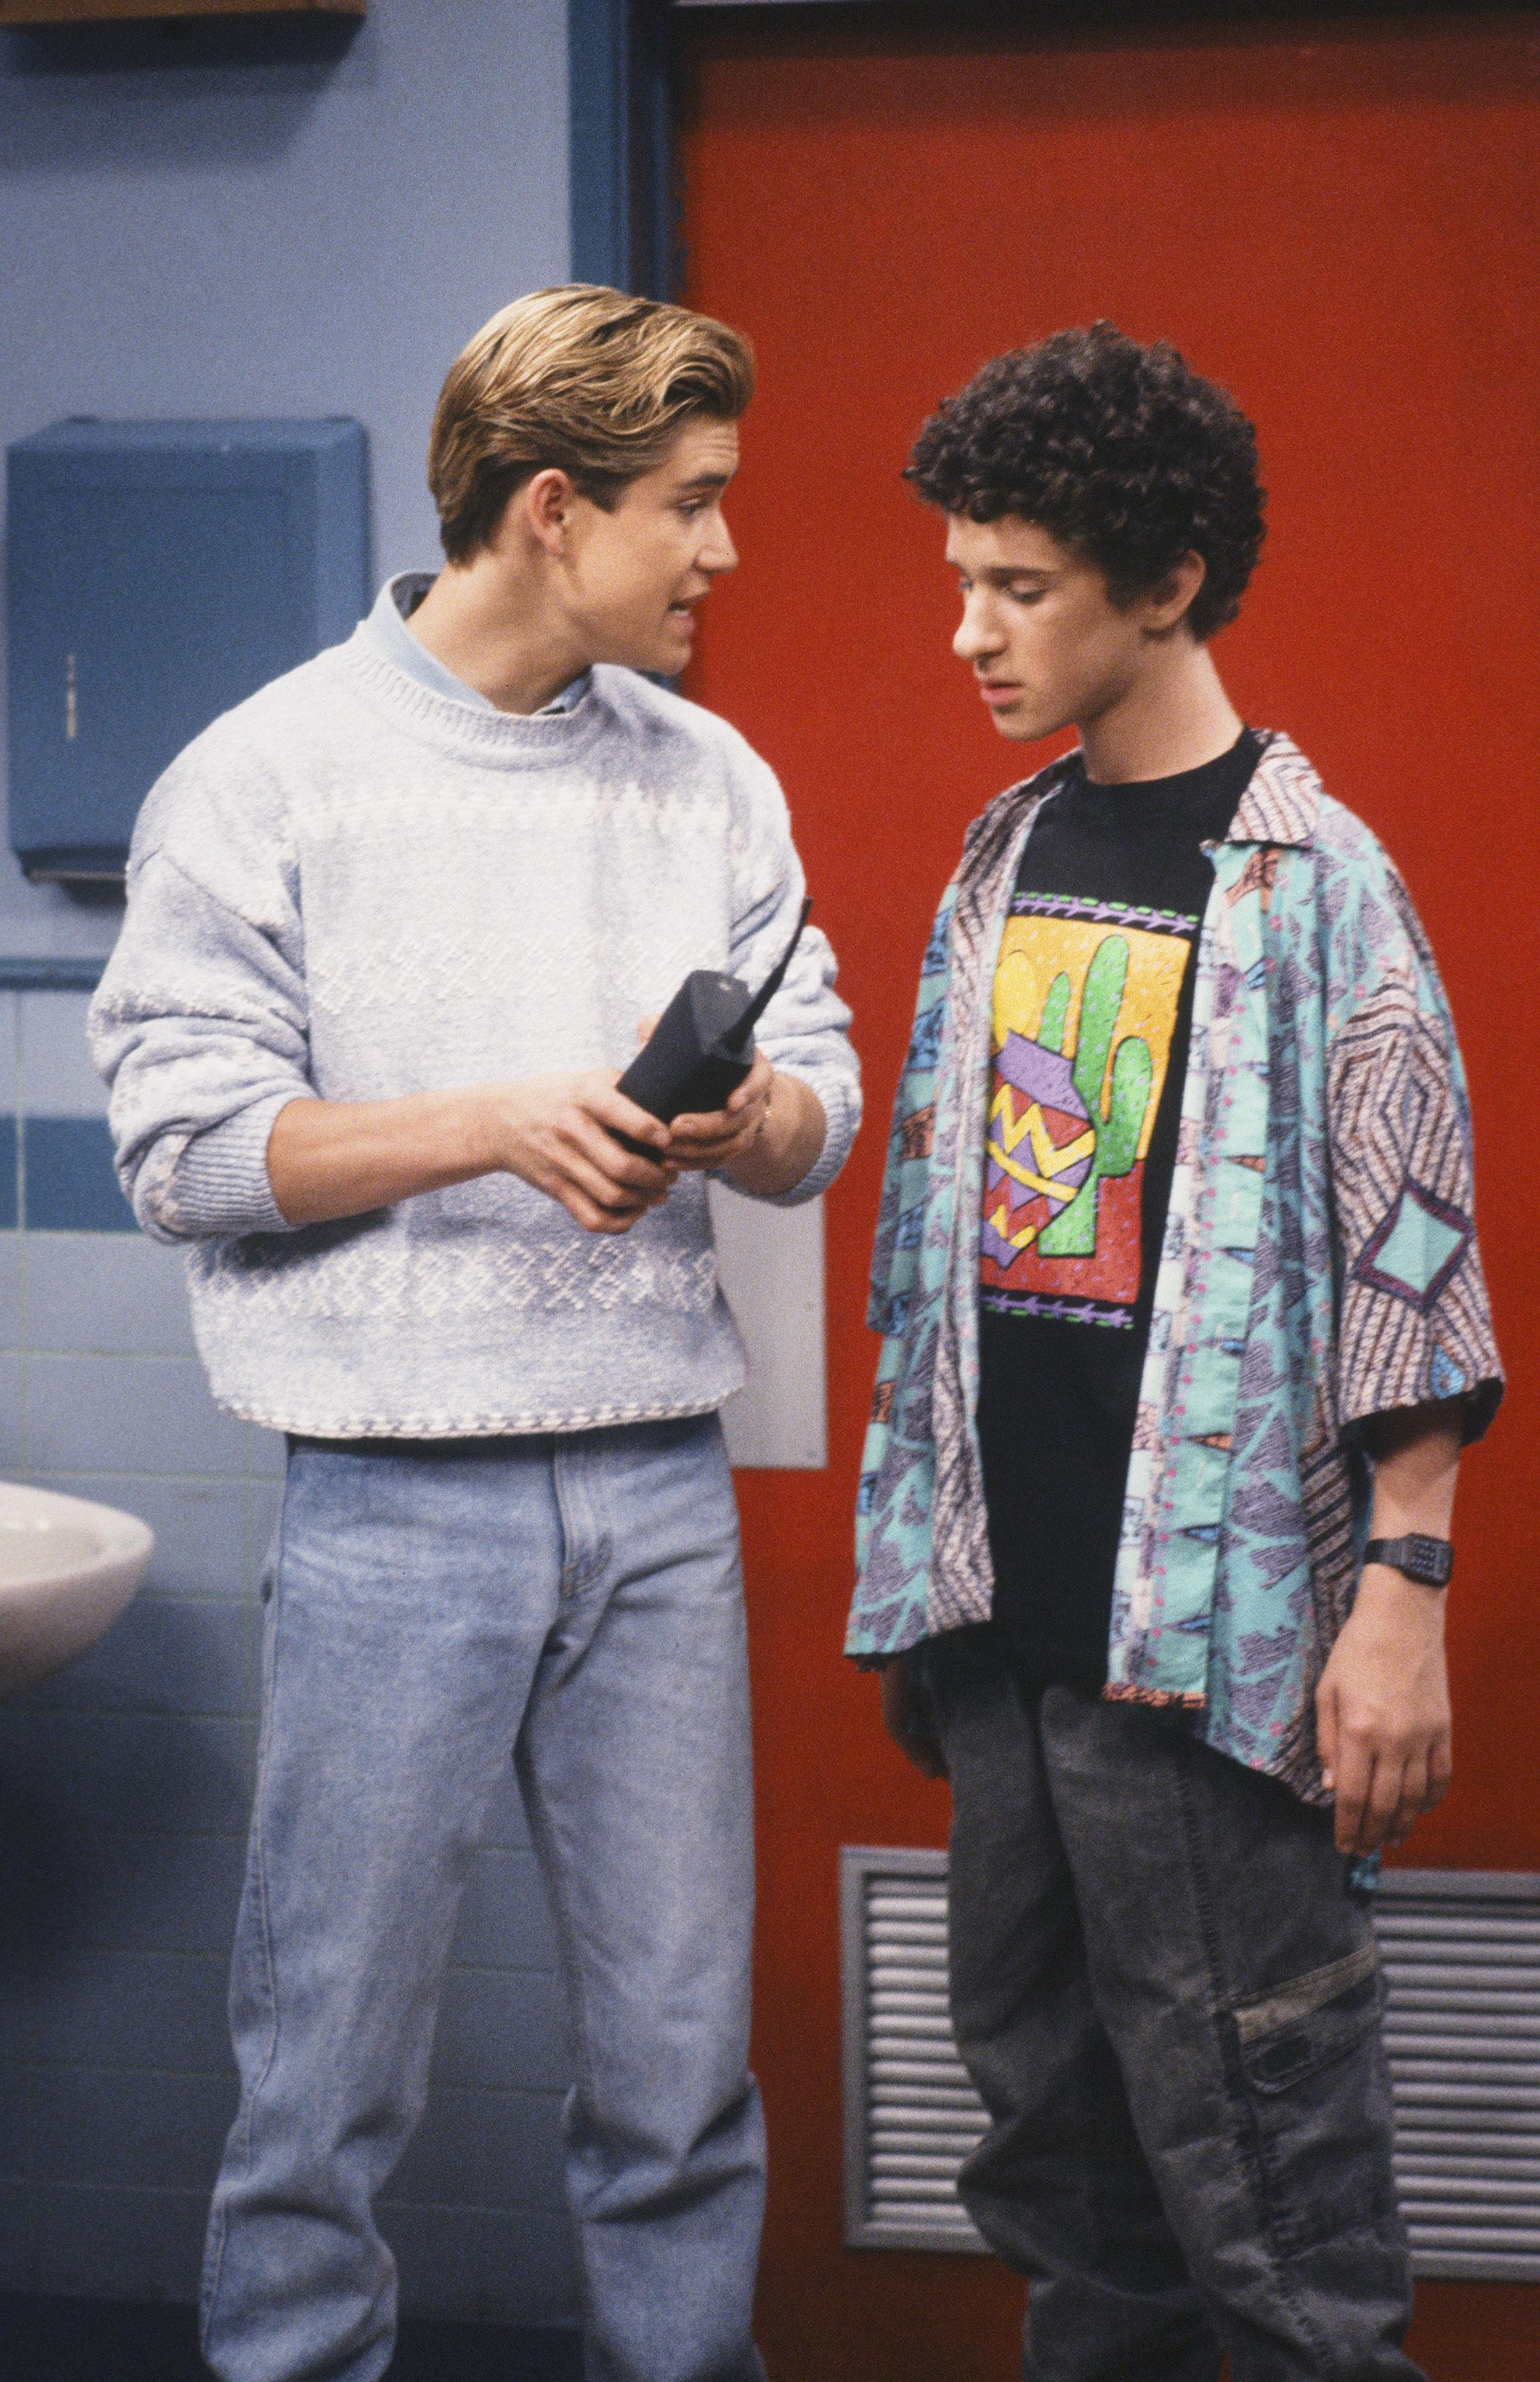 Dustin Diamond Saved By The Bell Actor Withdraws Appeal In Wisconsin Stabbing Case